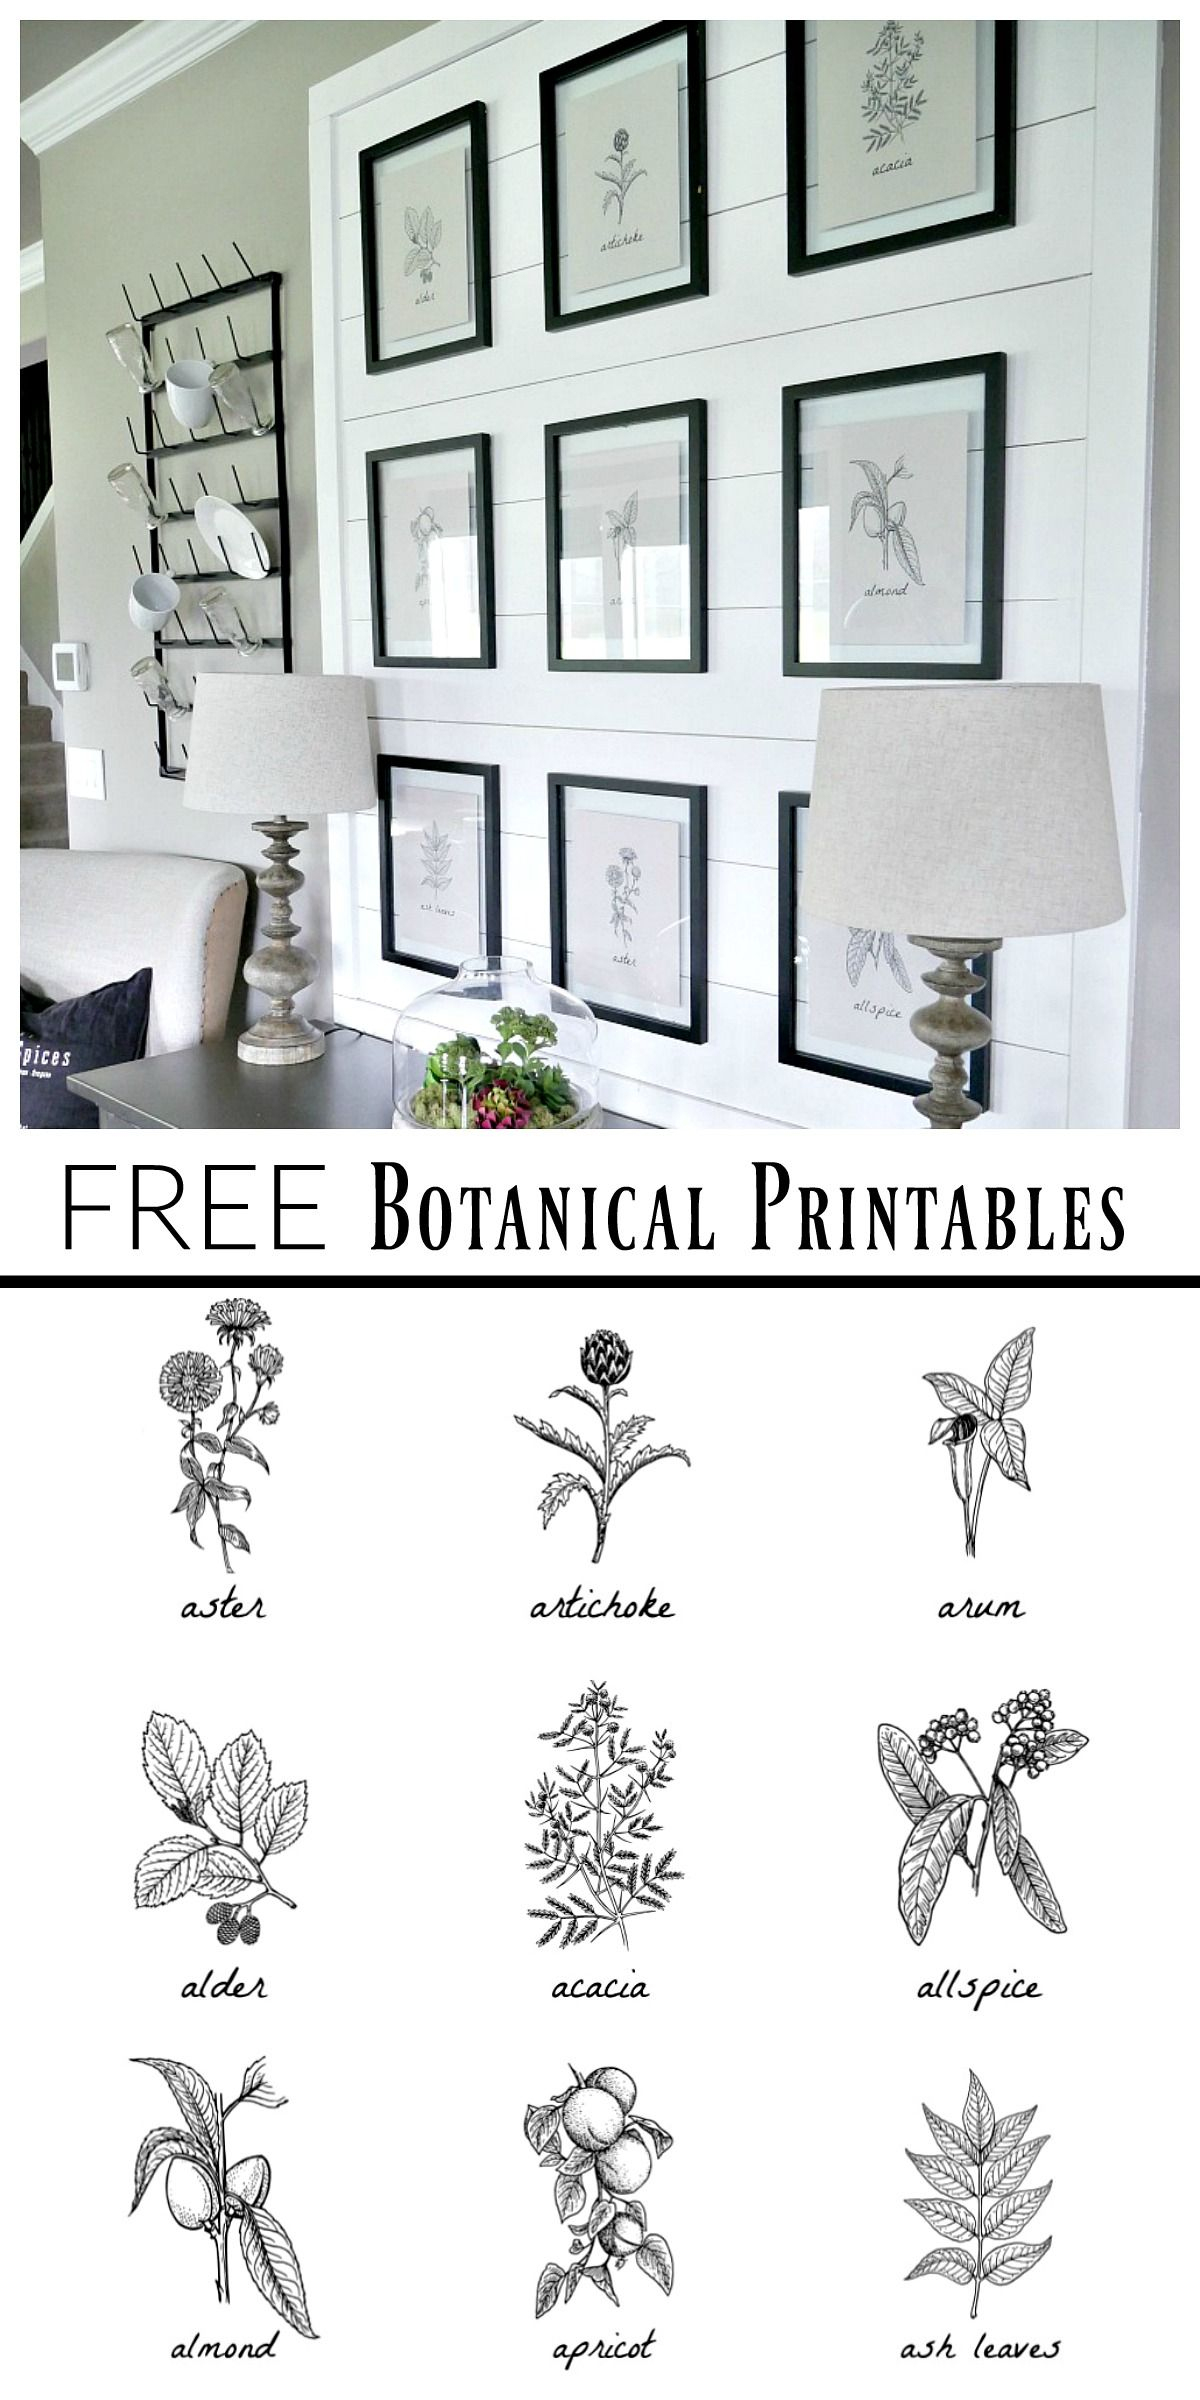 Free Botanical Prints | Bloggers' Best Diy Ideas | Diy Wall Art - Free Printable Artwork